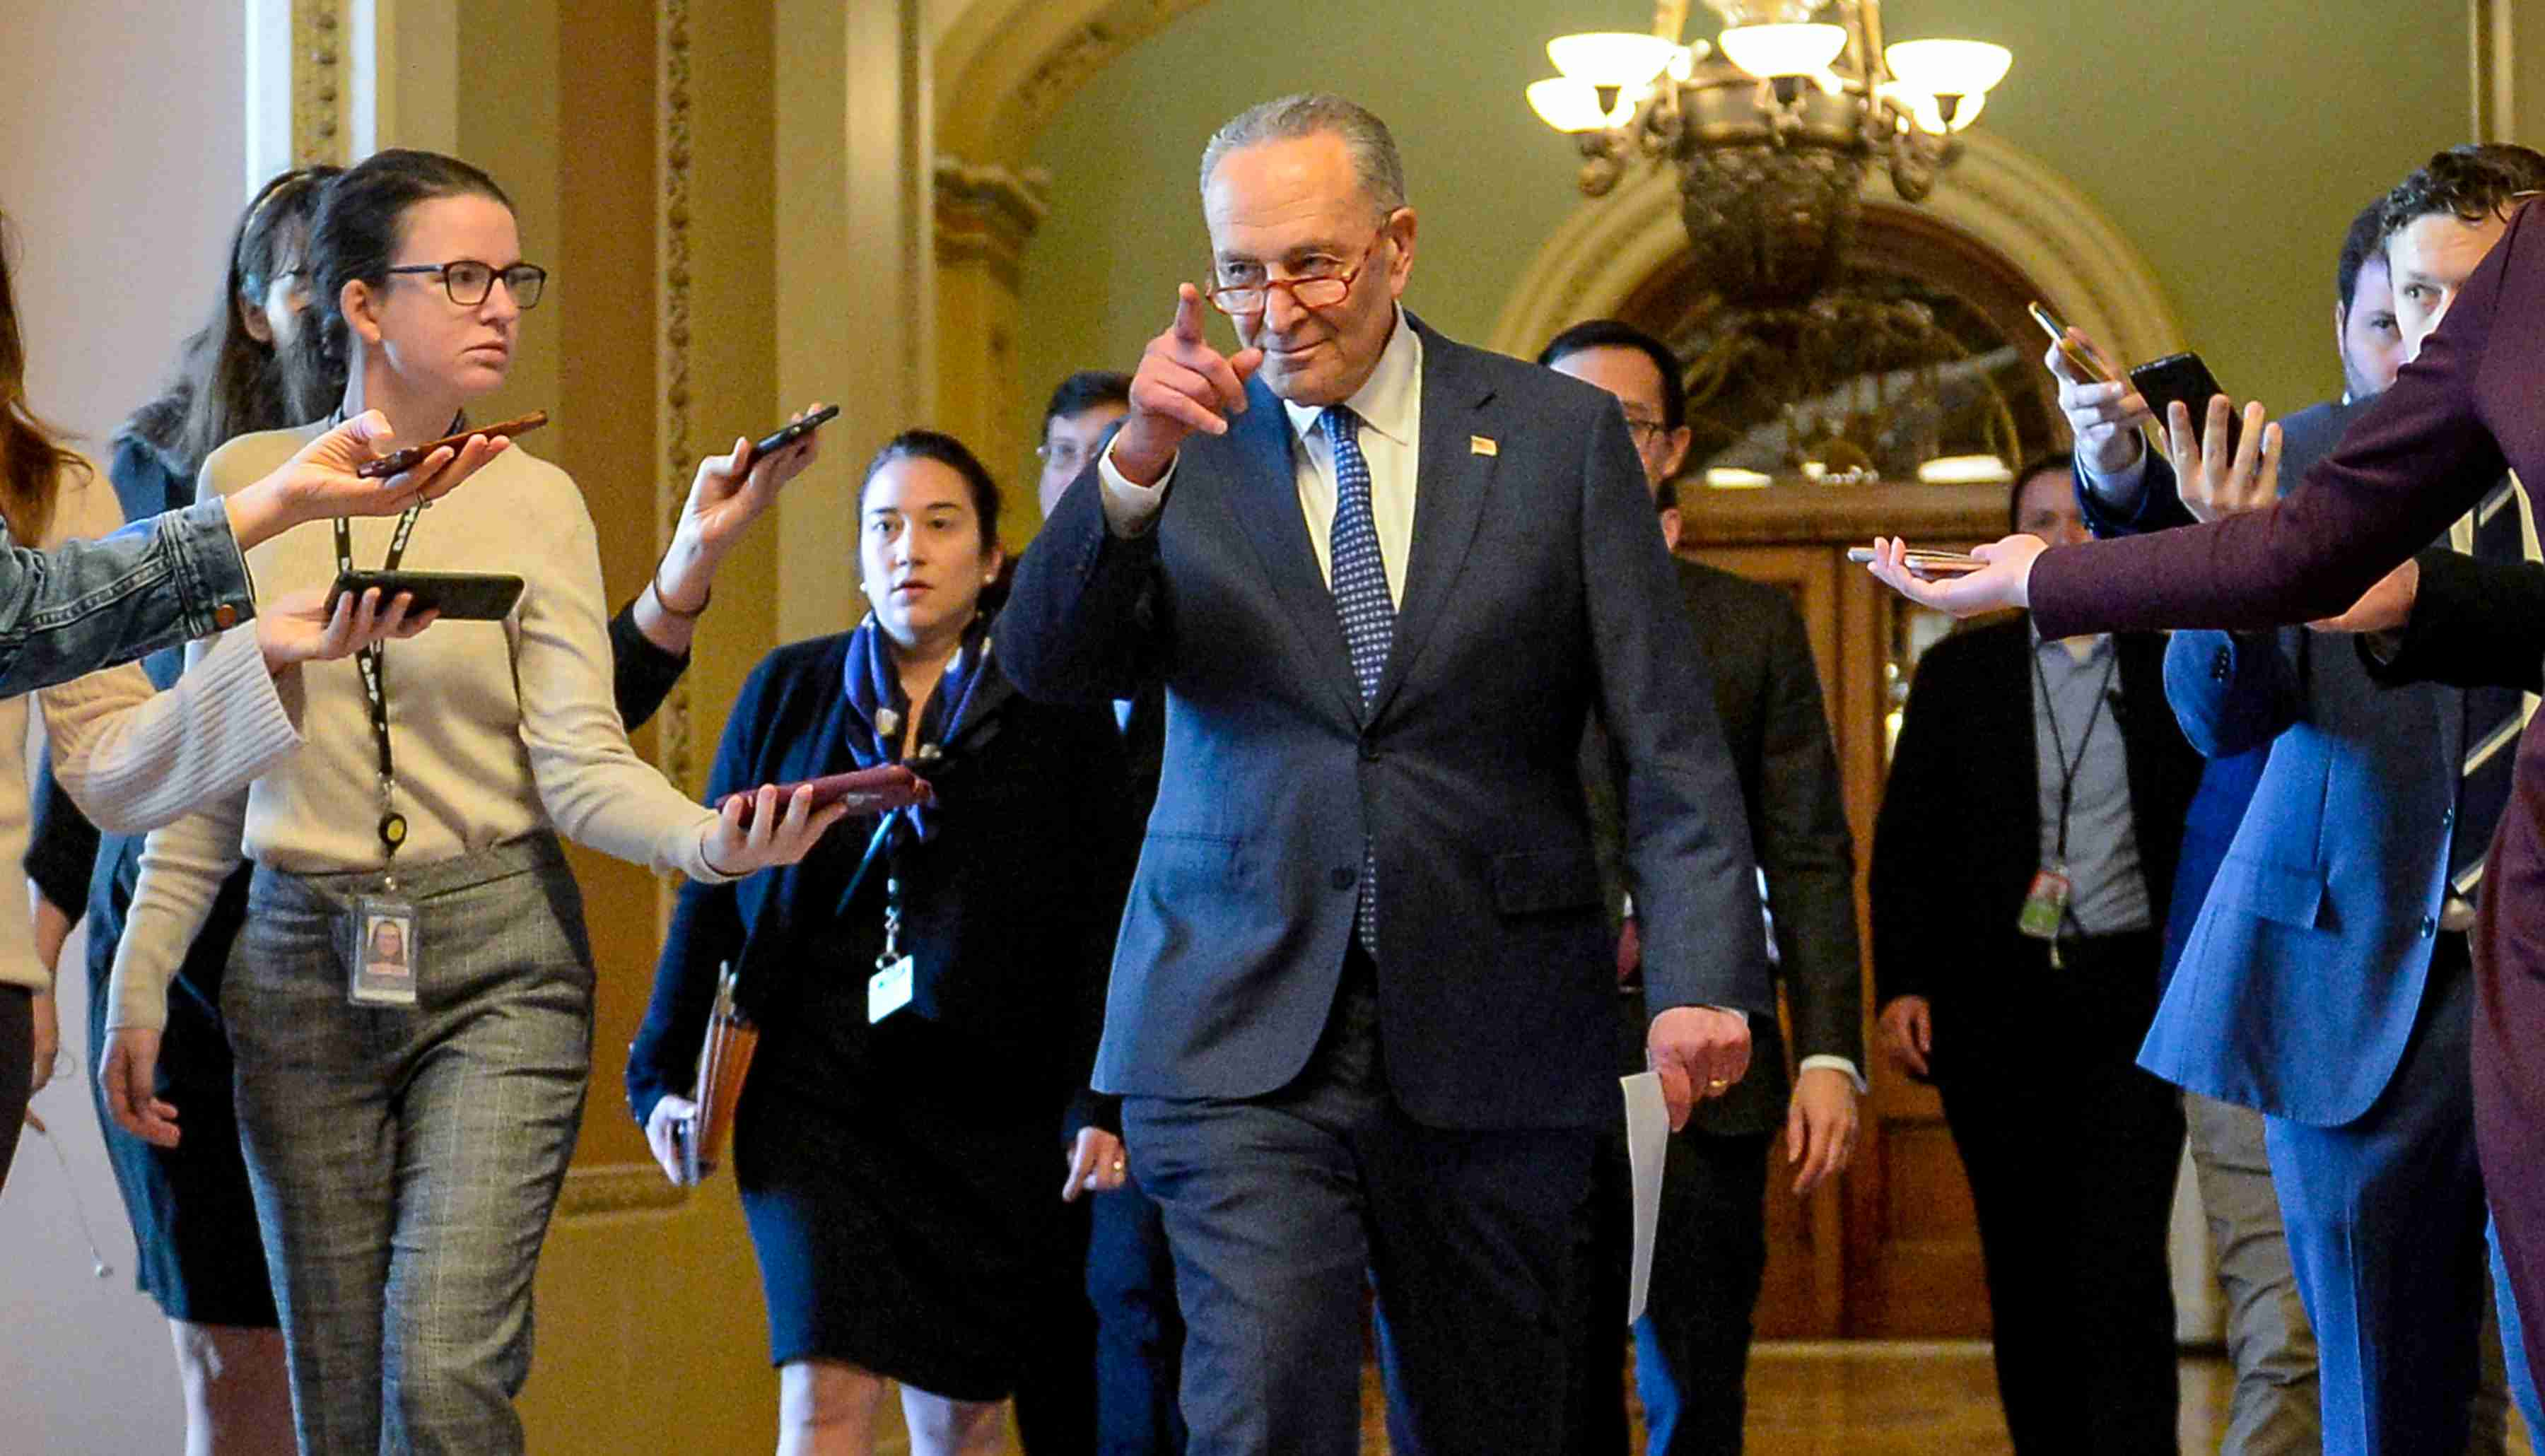 U.S. Senate Minority Leader Chuck Schumer (D-NY)  heads to a meeting in the office of U.S. Senate Majority Leader Mitch McConnell (R-KY) to wrap up work on coronavirus economic aid legislation, during the coronavirus disease (COVID-19) outbreak, in Washington, U.S., March 22, 2020.      REUTERS/Mary F. Calvert